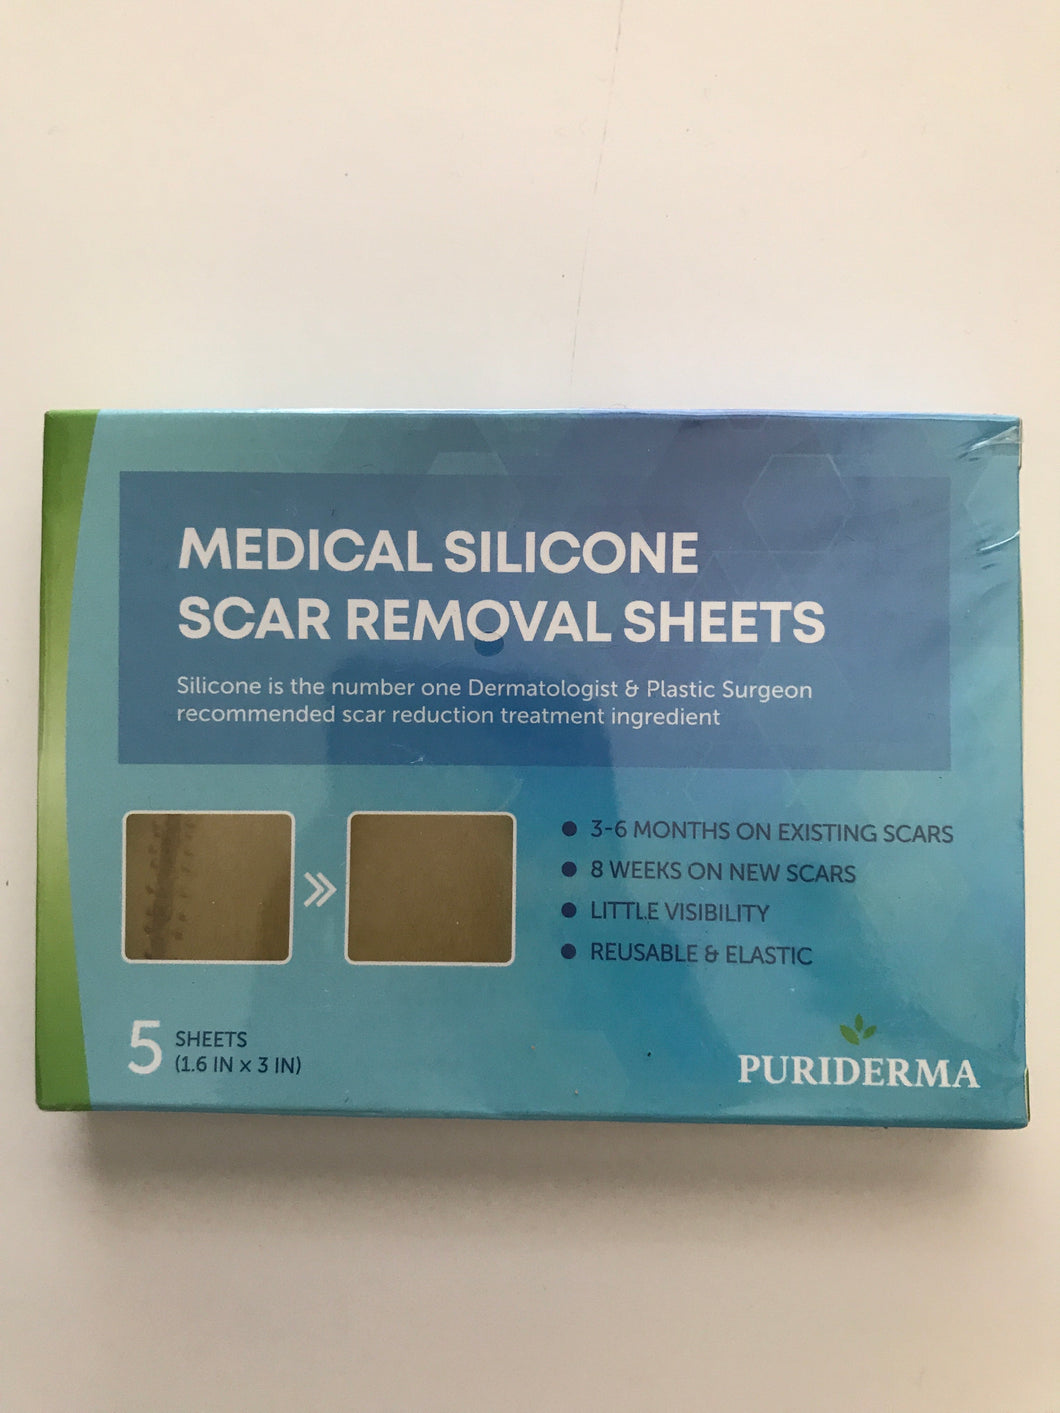 Medical Silicone Scar Removal Sheets